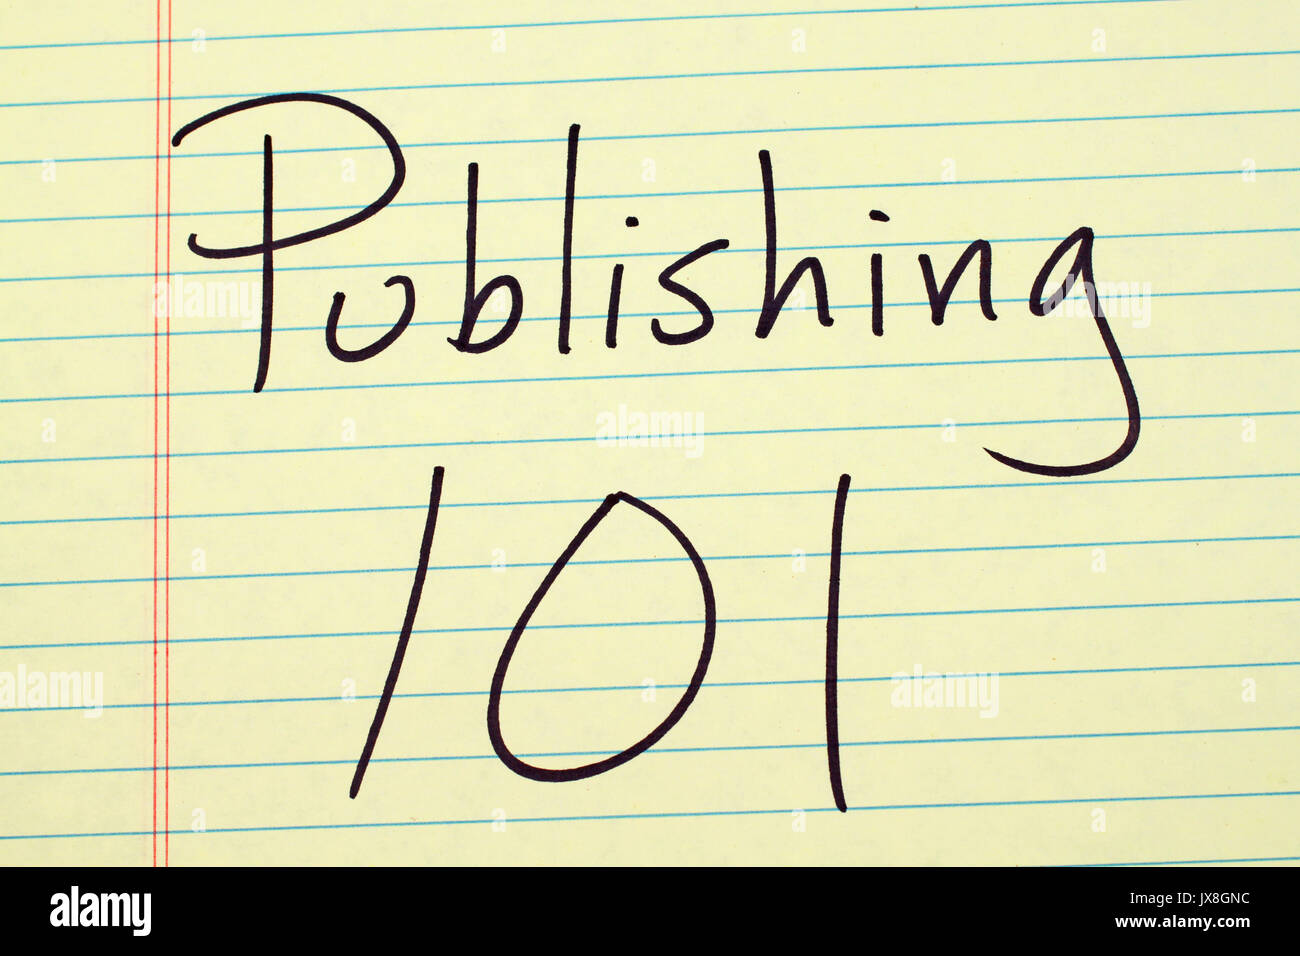 The words 'Publishing 101' on a yellow legal pad - Stock Image